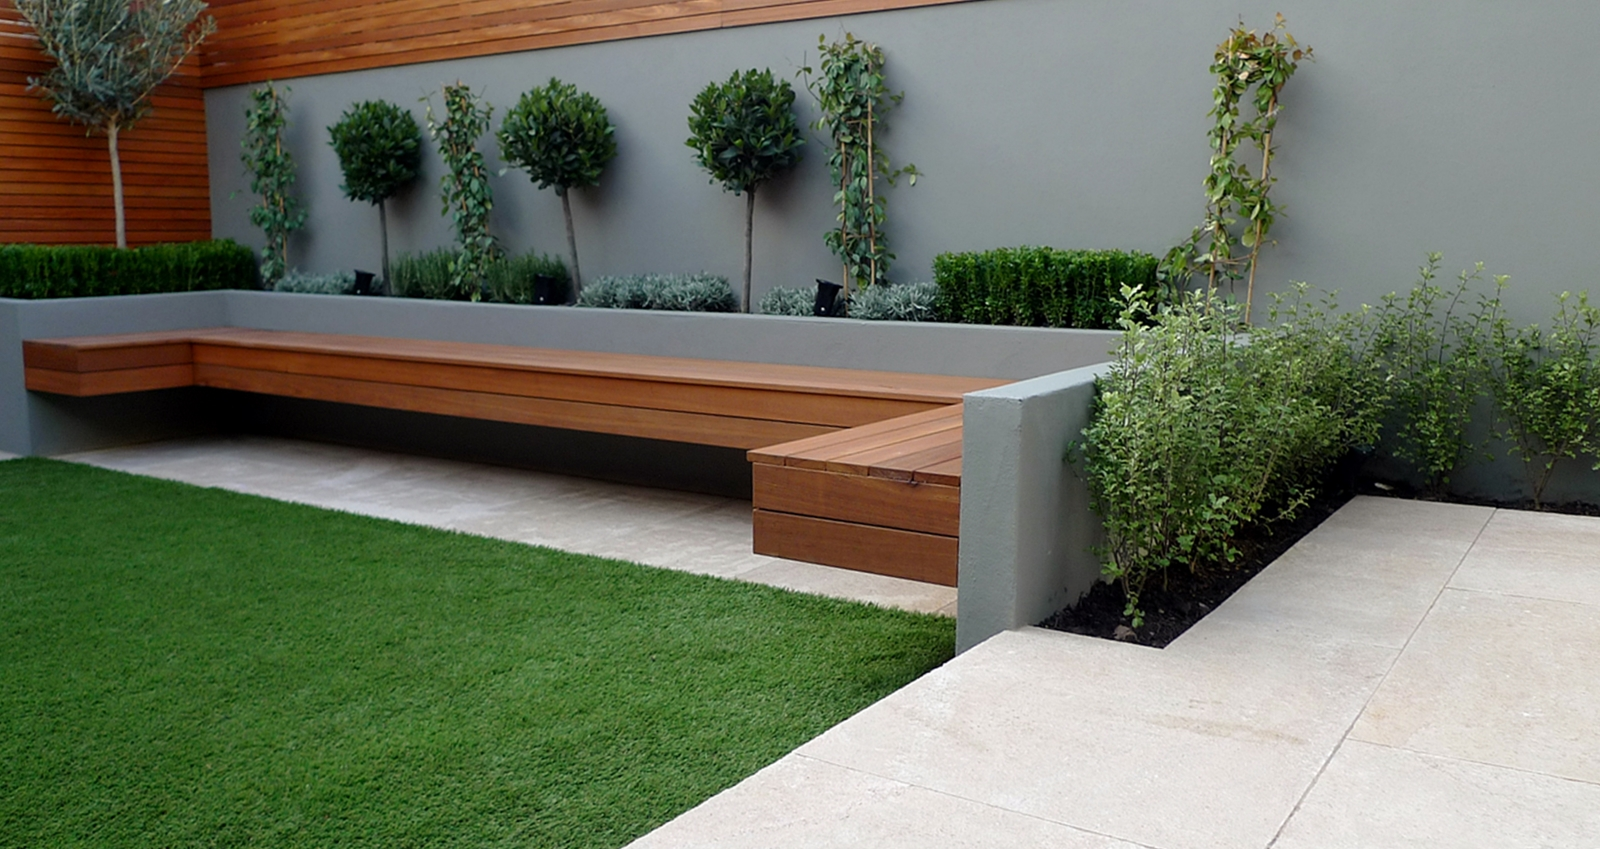 Courtyard london garden design for Paved garden designs ideas